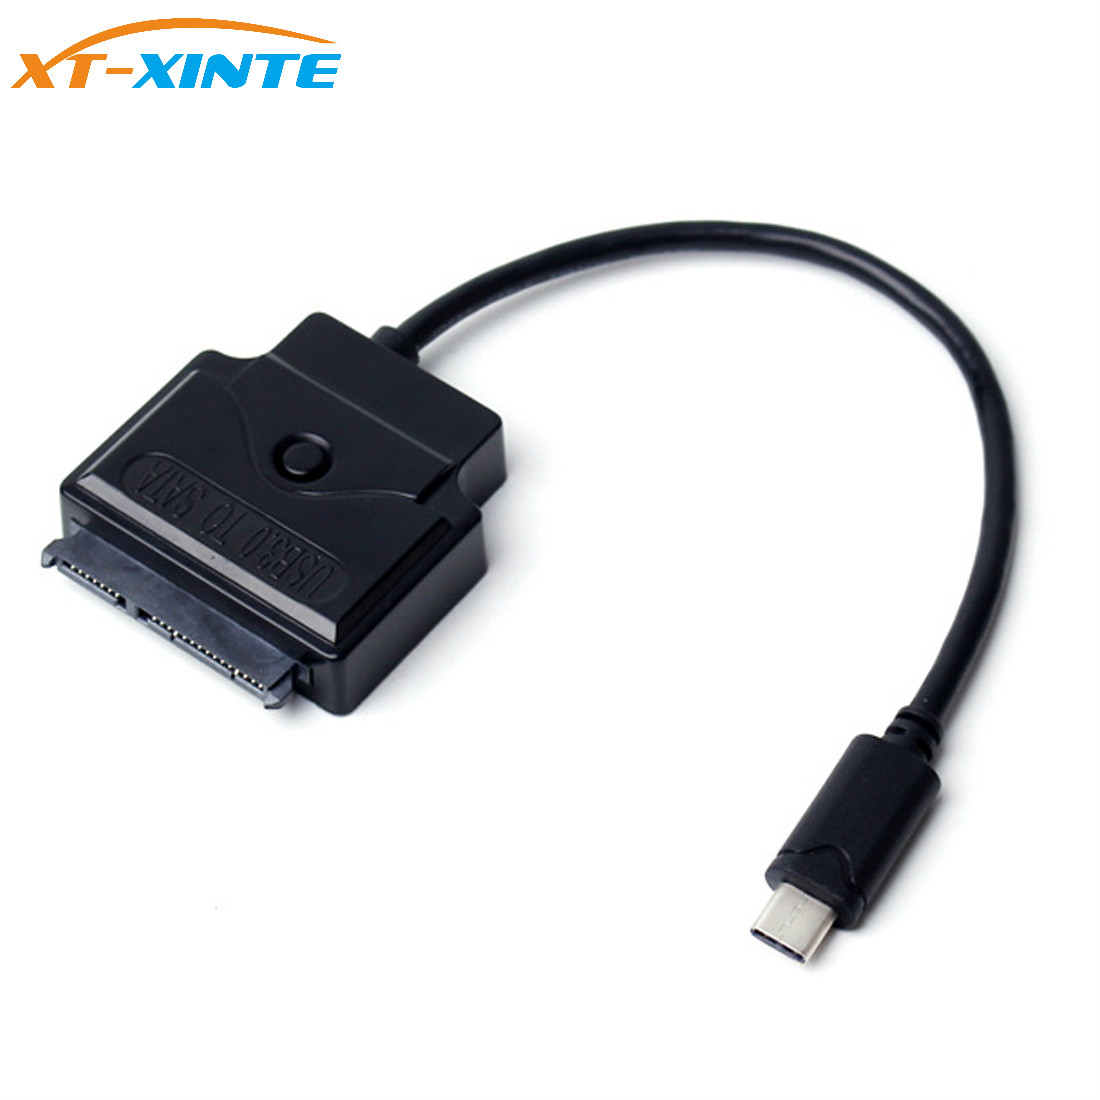 Type-C USB 3.1 Connector to SATA 22 Pin HDD SATA 2.5 3.5 SSD Hard Disk Drive External HDD Converter Cable Support DC 12V Power usb 3 1 type c usb c male to sata 22 pin 2 5 hard disk driver ssd support otg function adapter cable 20cm for macbook